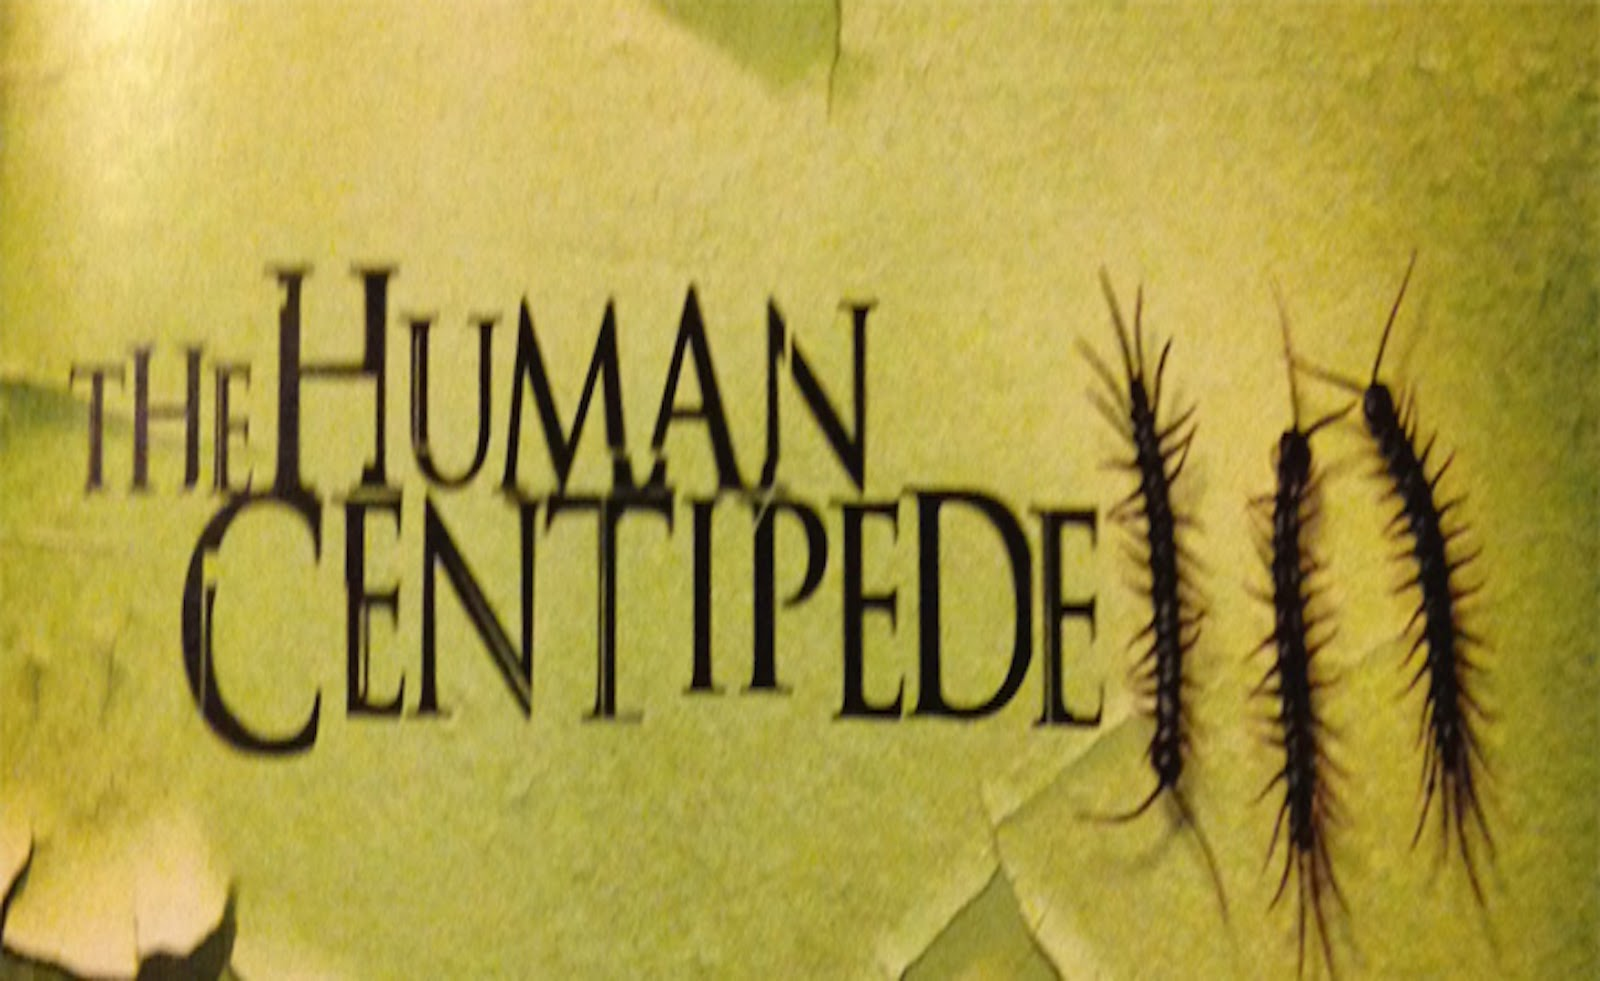 The Human Centipede 3 banner